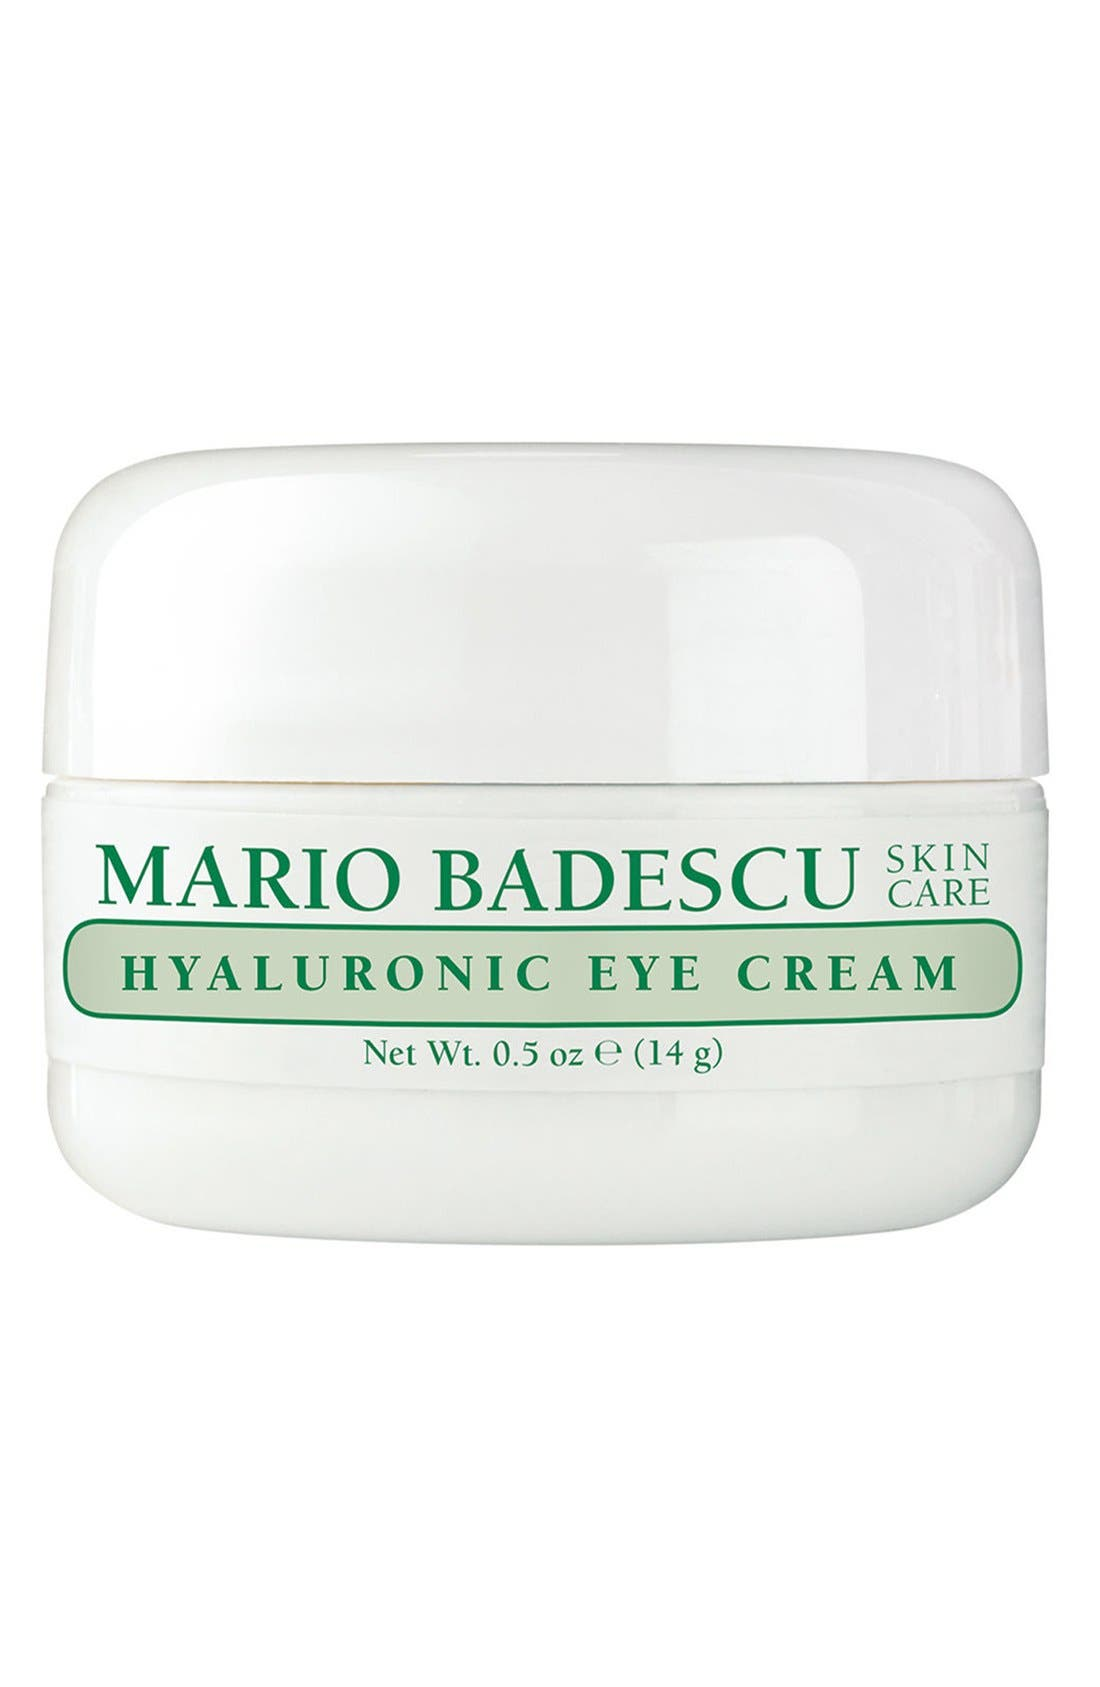 Hyaluronic Eye Cream,                             Main thumbnail 1, color,                             NONE